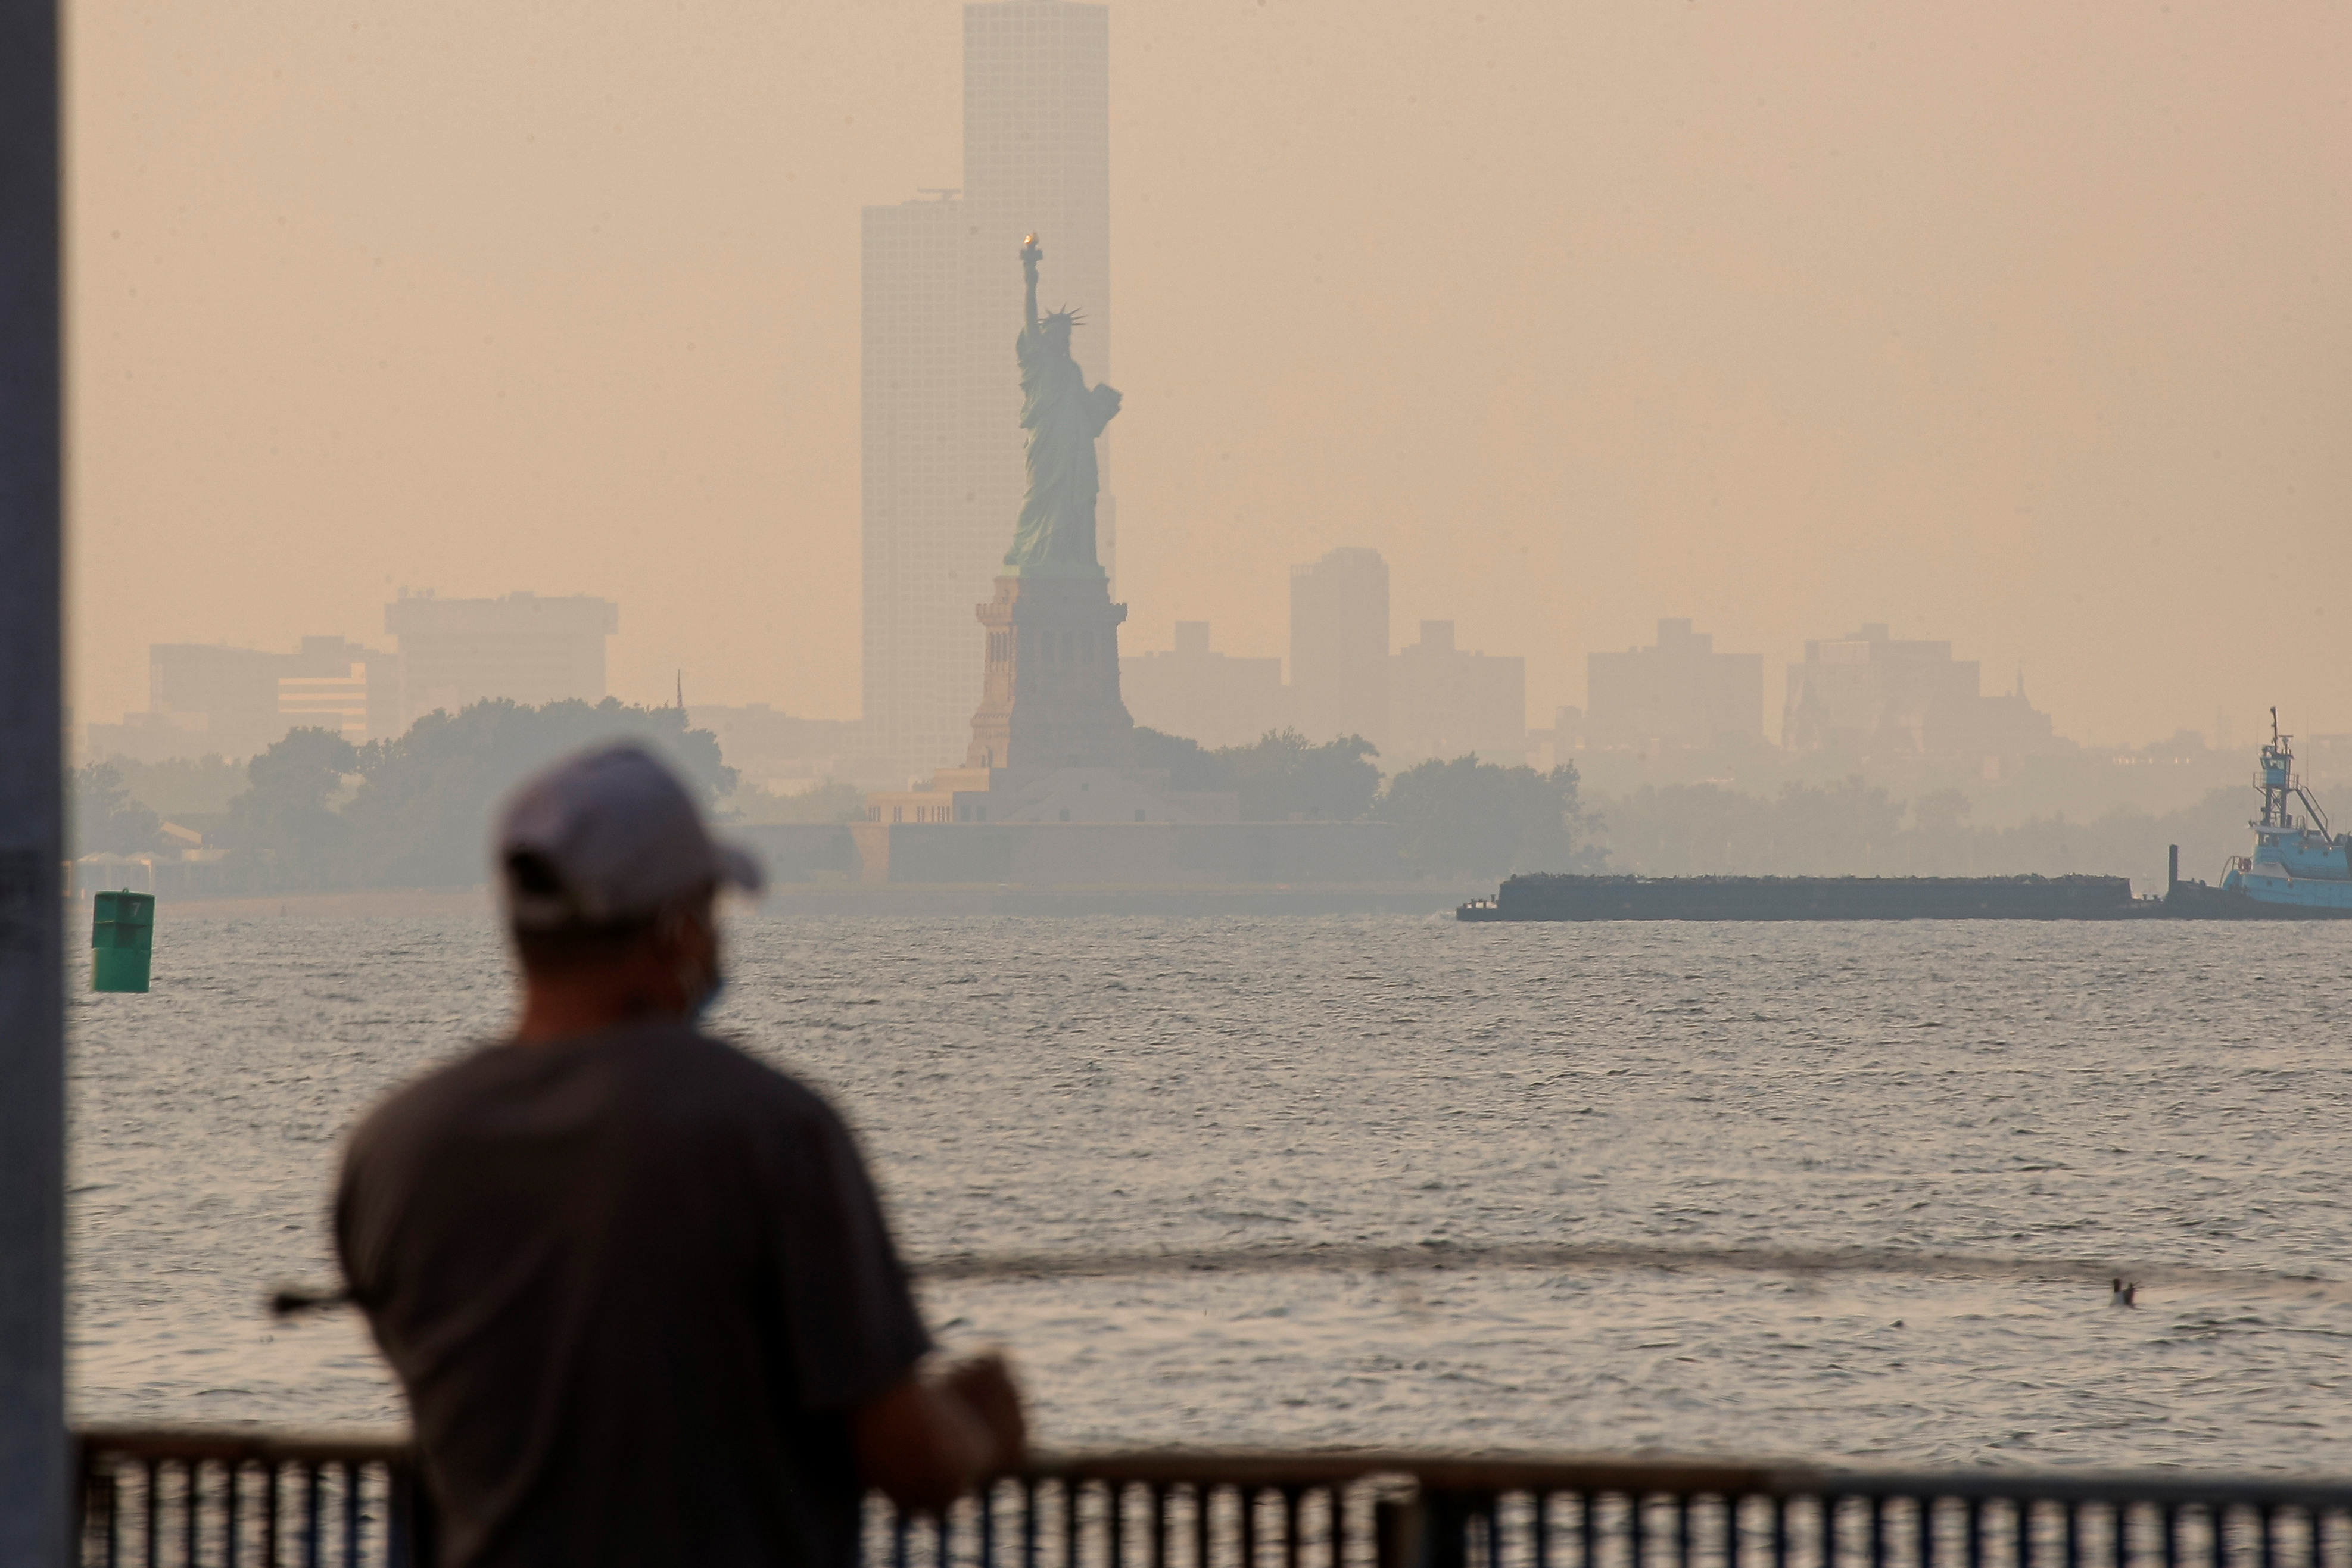 The Statue of Liberty is seen through a cover of wildfire smoke in New York Harbor as seen from Brooklyn, New York, U.S., July 21, 2021.  REUTERS/Brendan McDermid